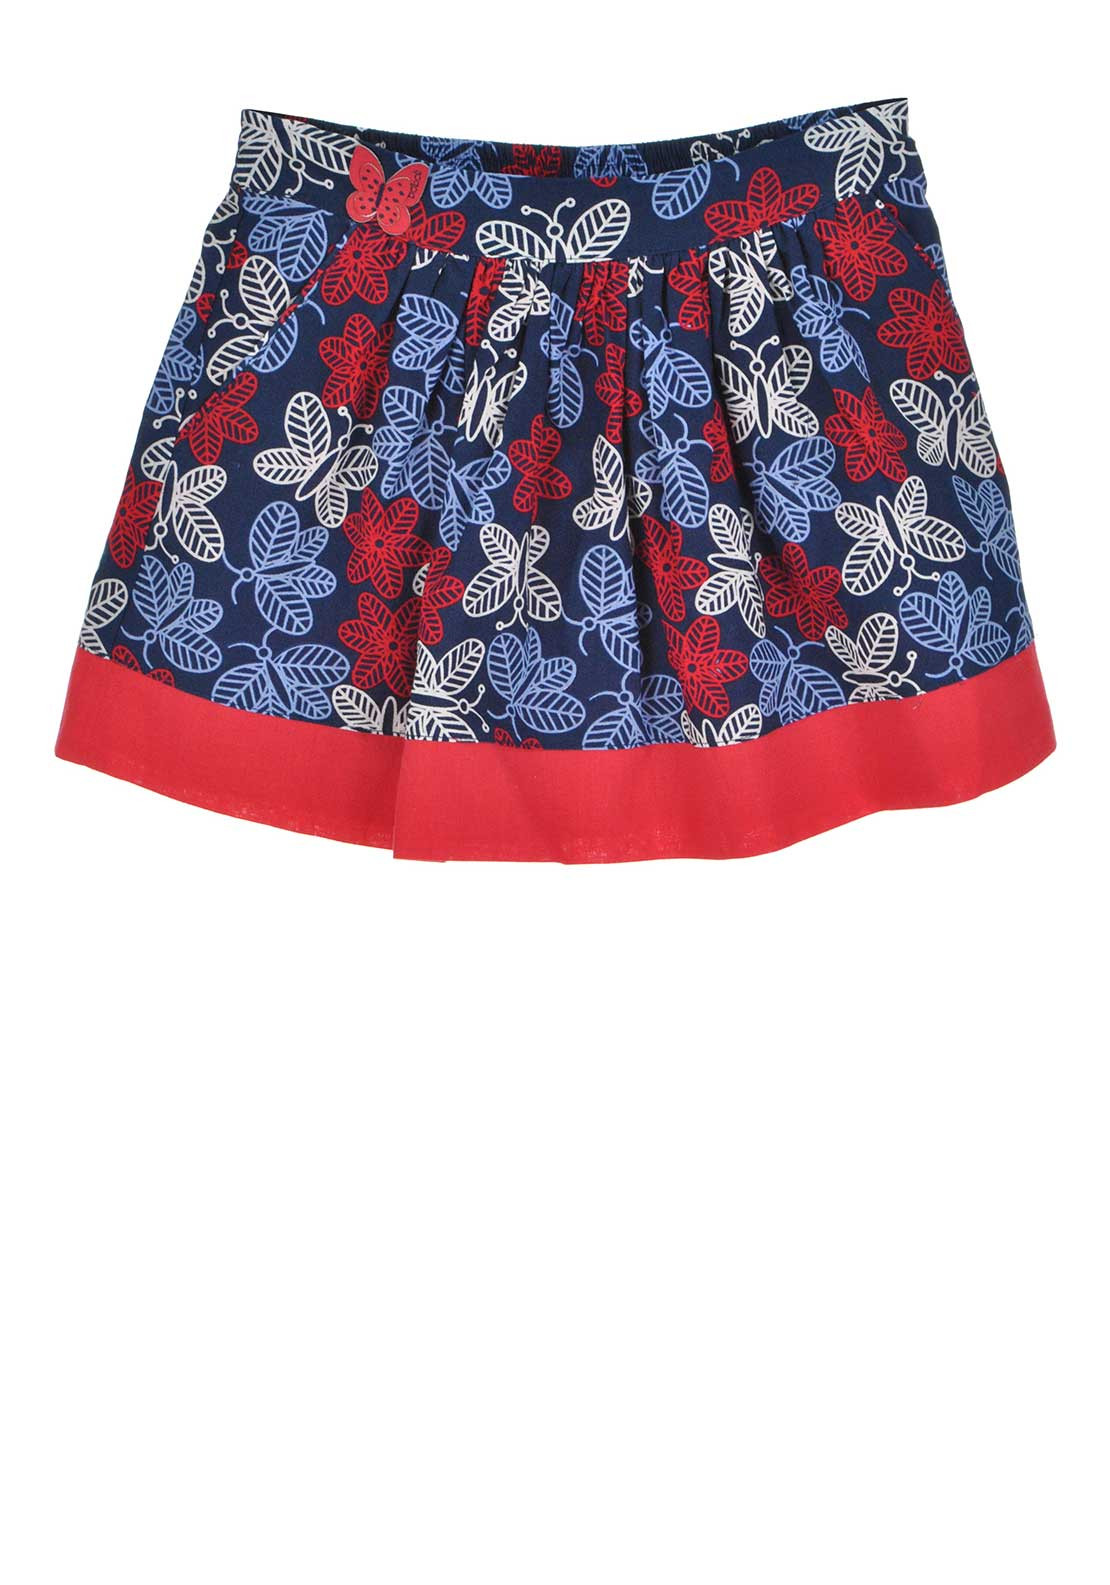 Boboli Girls Flower Print Skirt, Blue and Red